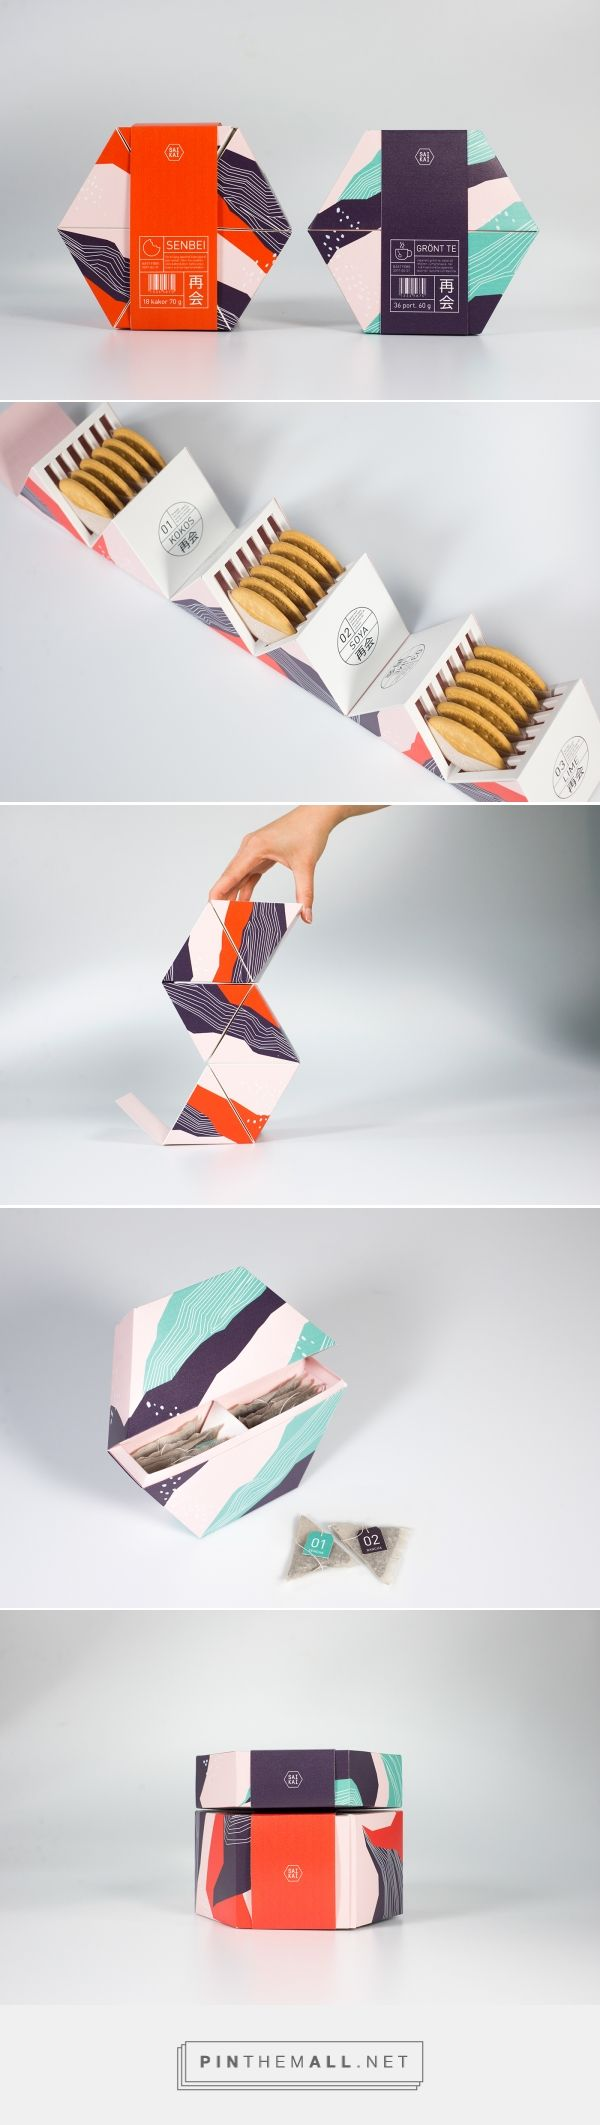 Saikai student project the idea was to create packaging and visual concept for japanese